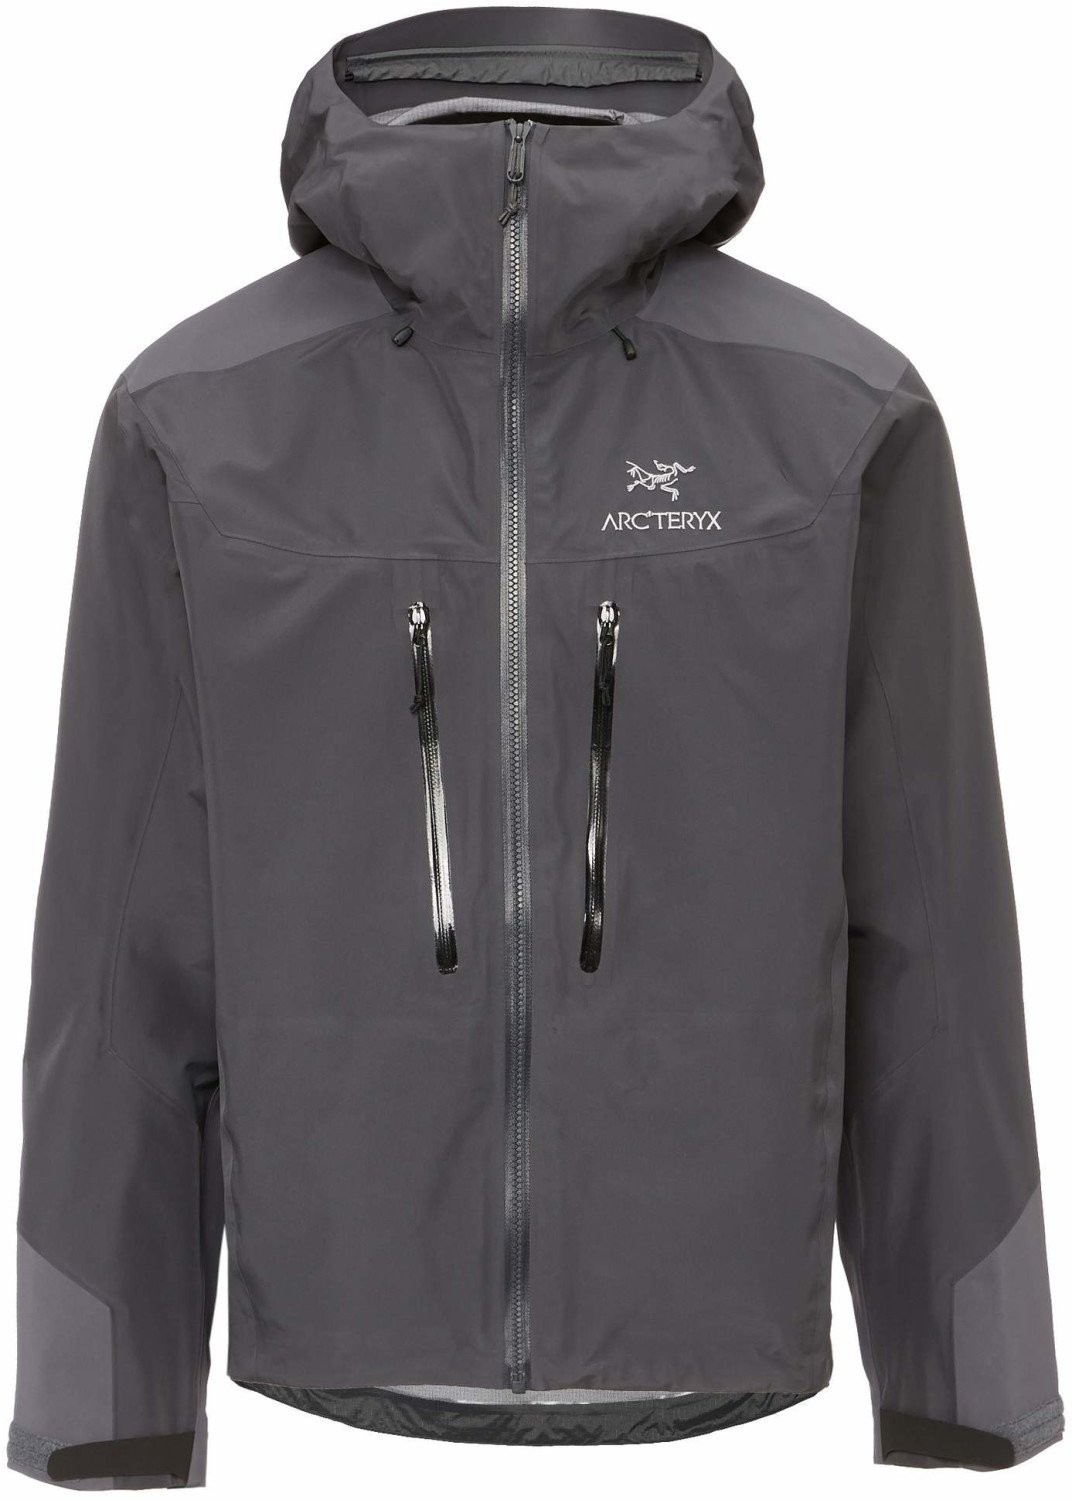 Arc'teryx Alpha FL Jacket im Test